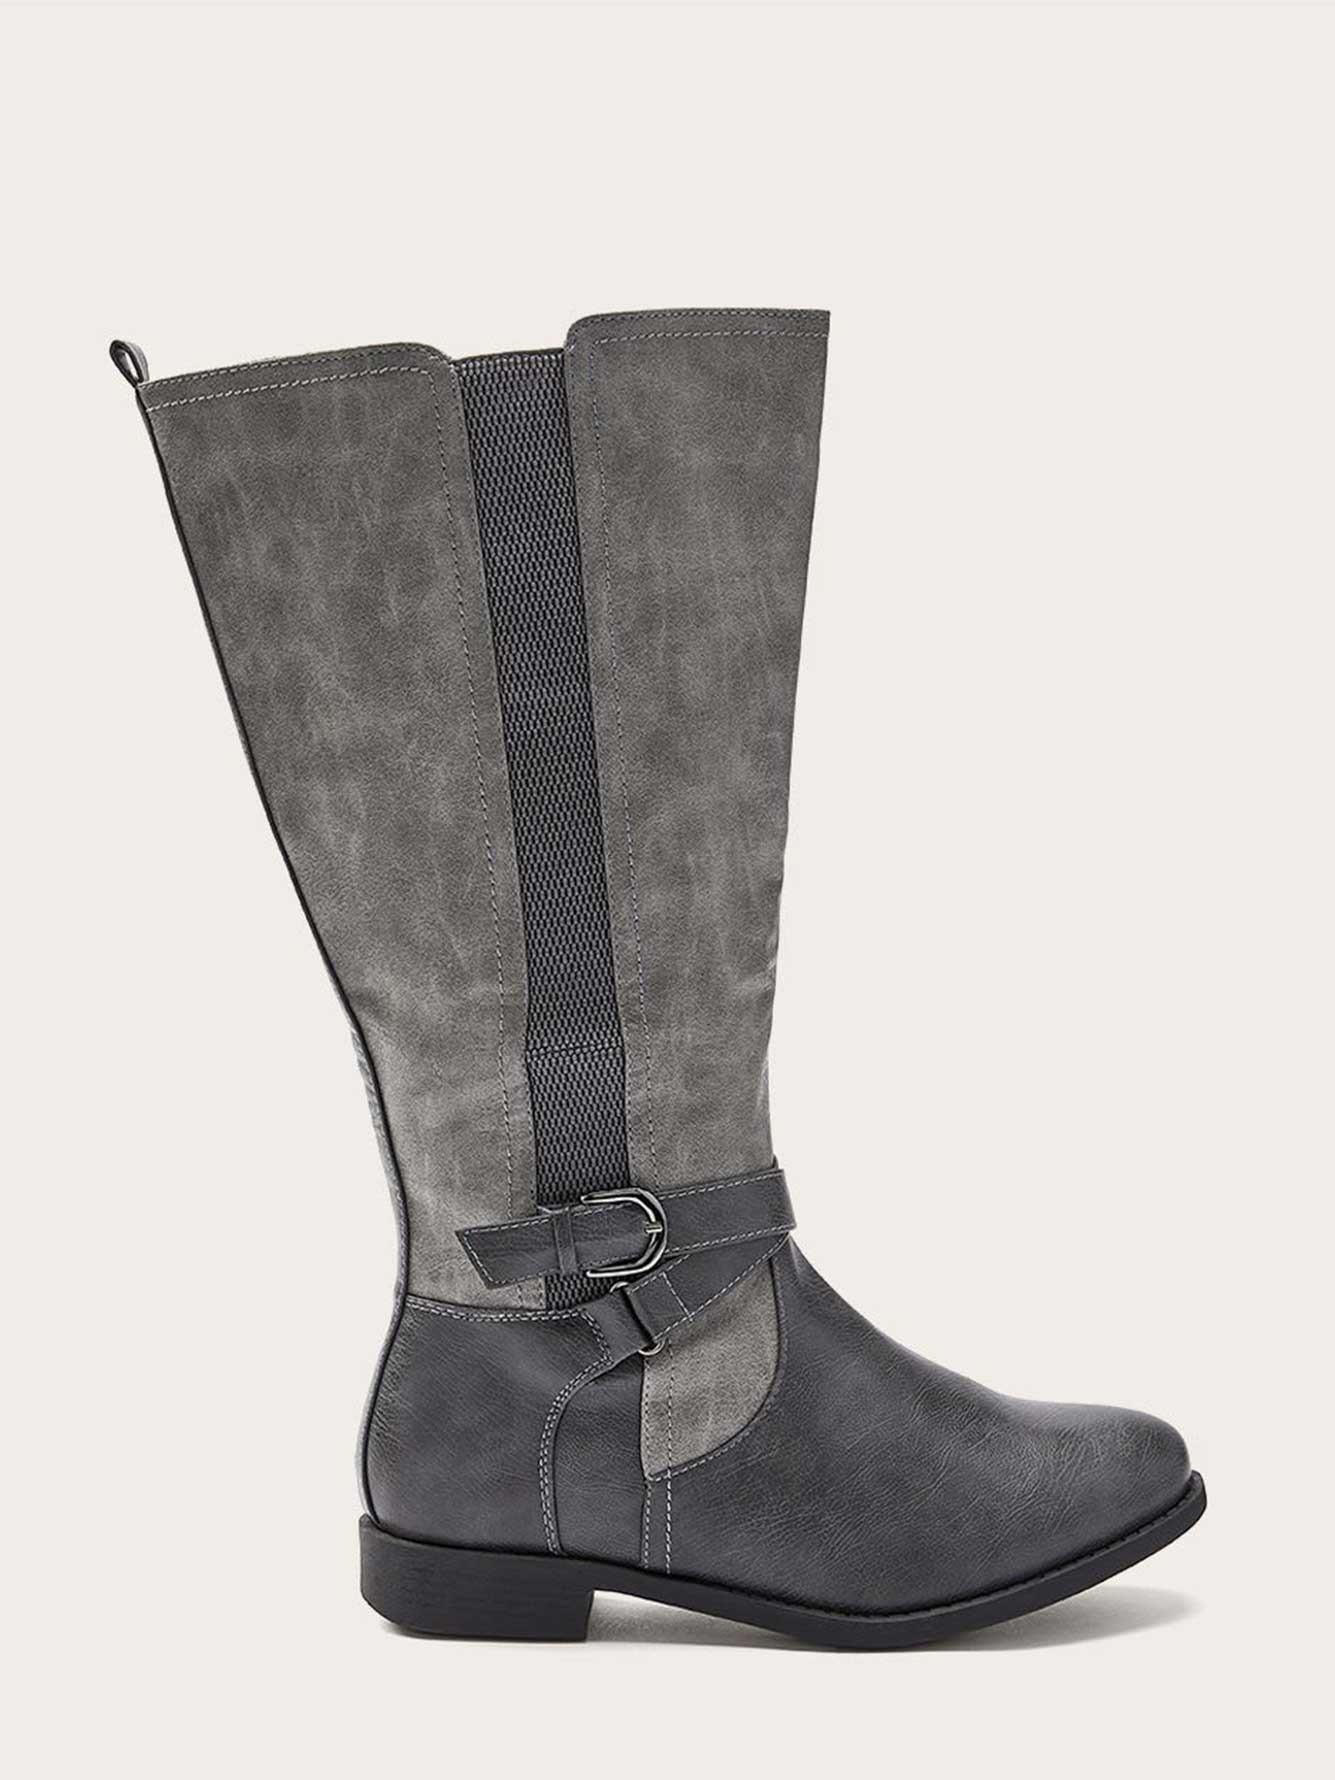 a1d911bbf51 Extra Wide Calf Tall Boots with Buckle